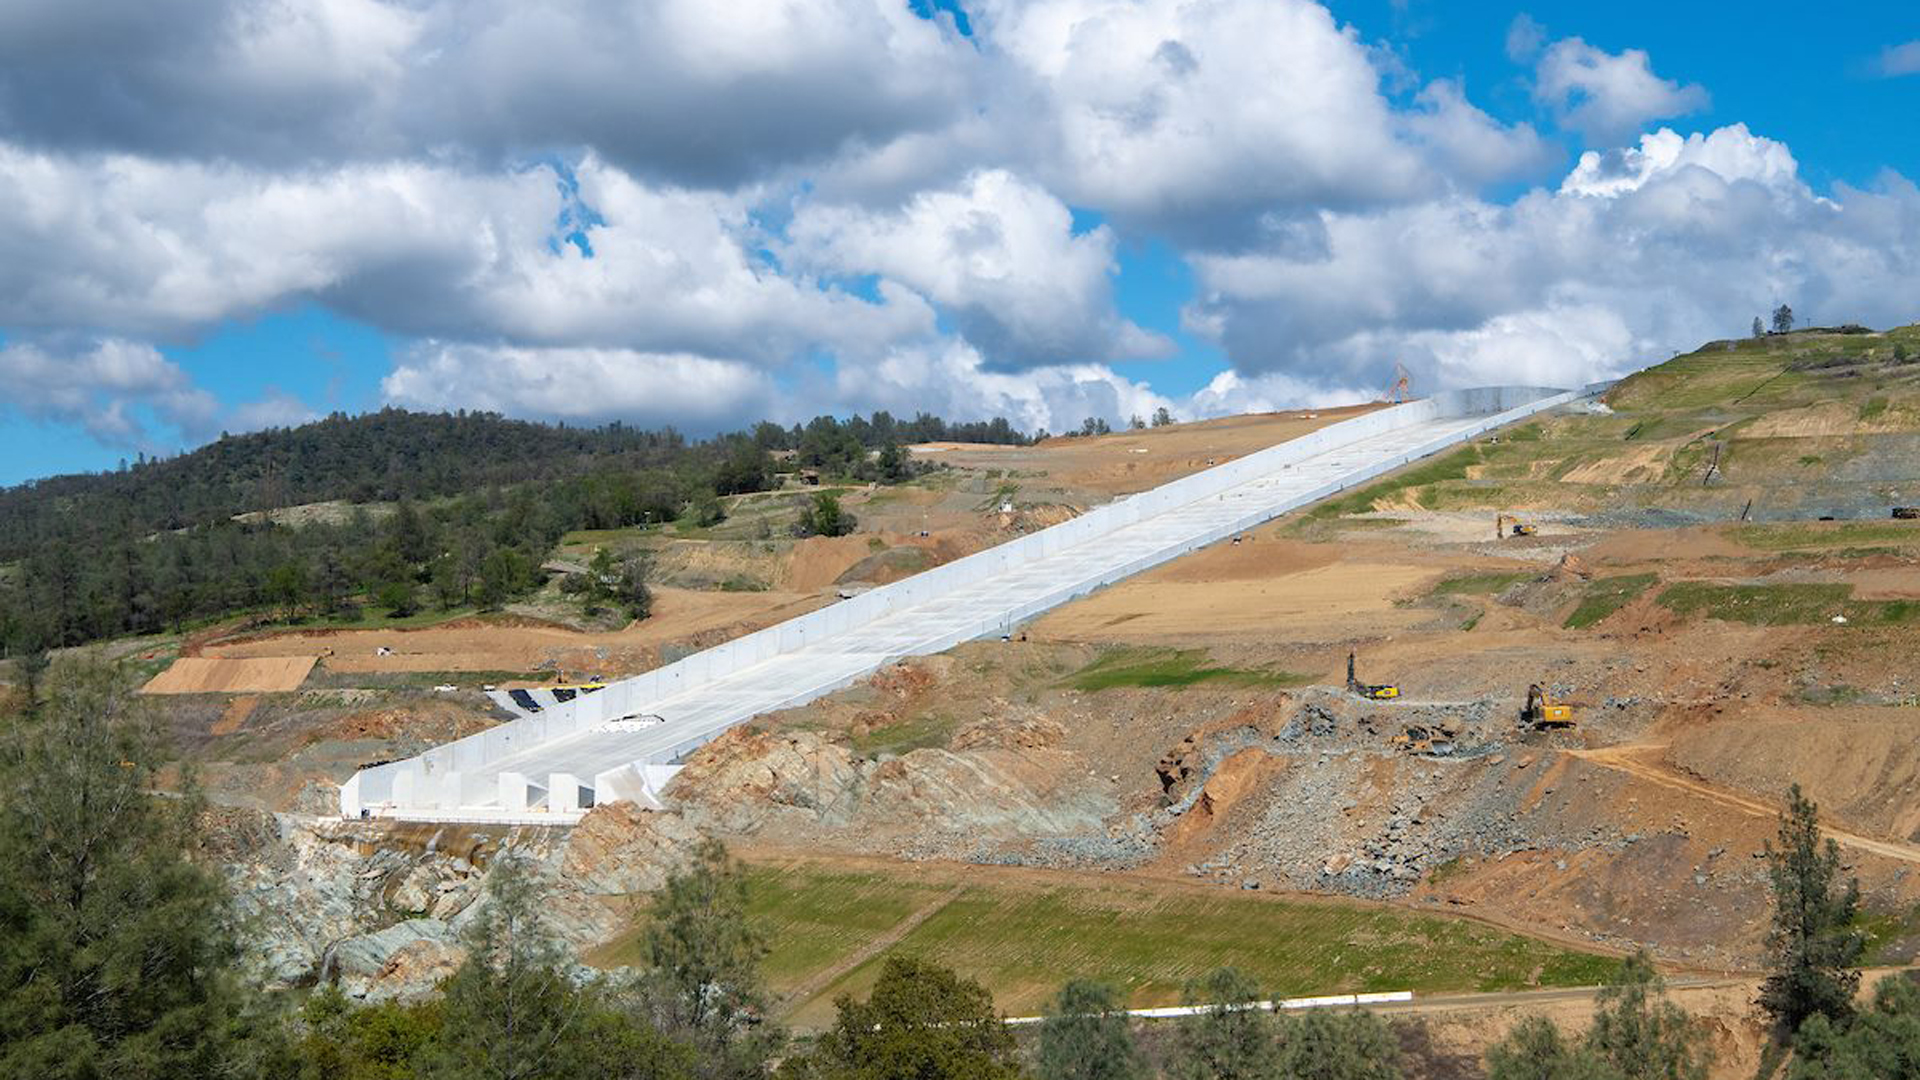 The California Department of Water Resources released this photo of the Oroville Dam spillway on March 25, 2019.